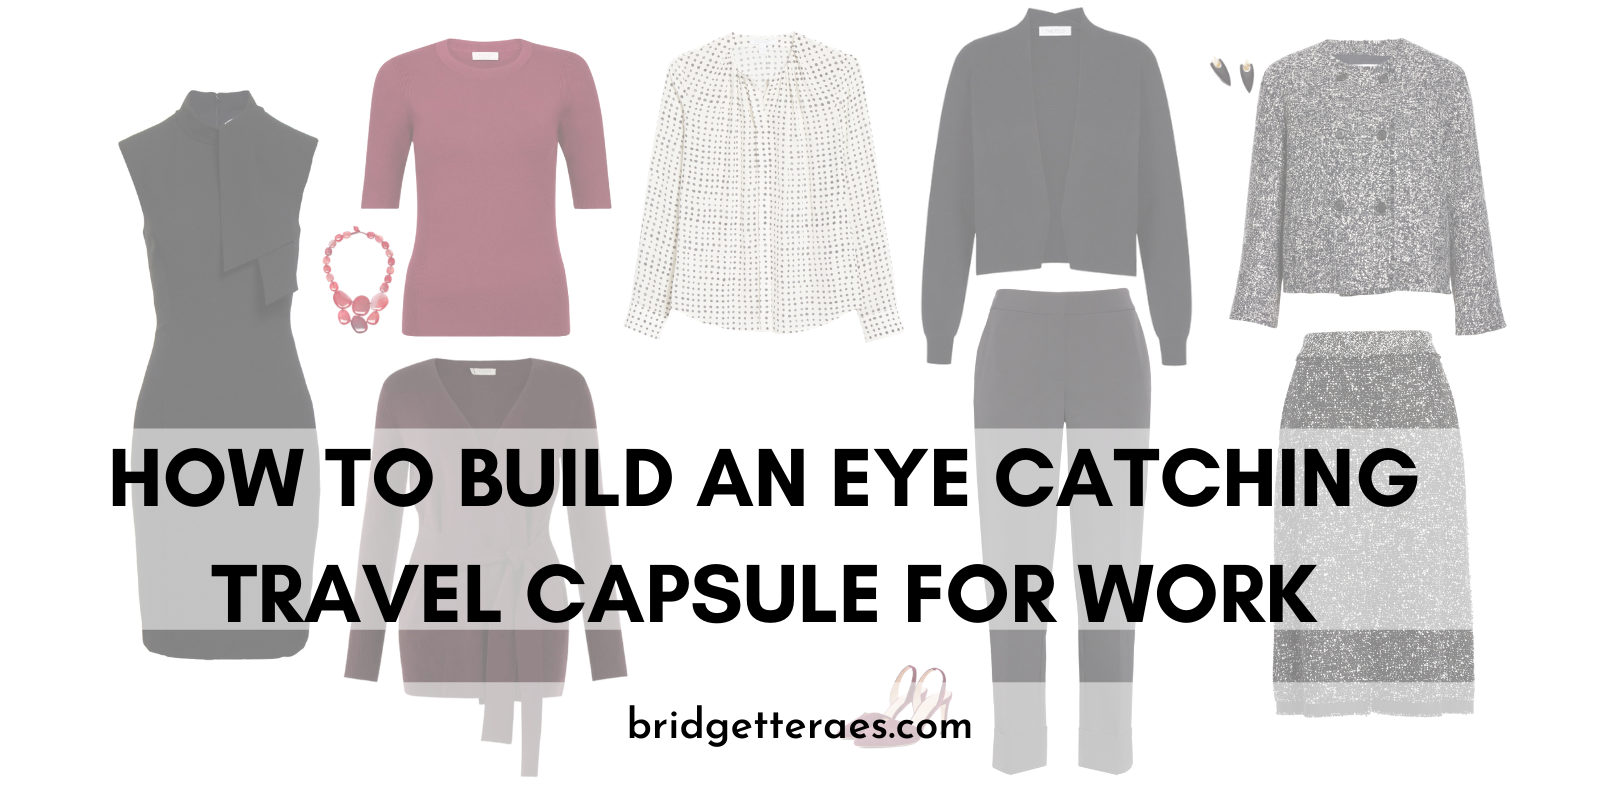 How to Build an Eye Catching Travel Capsule for Work